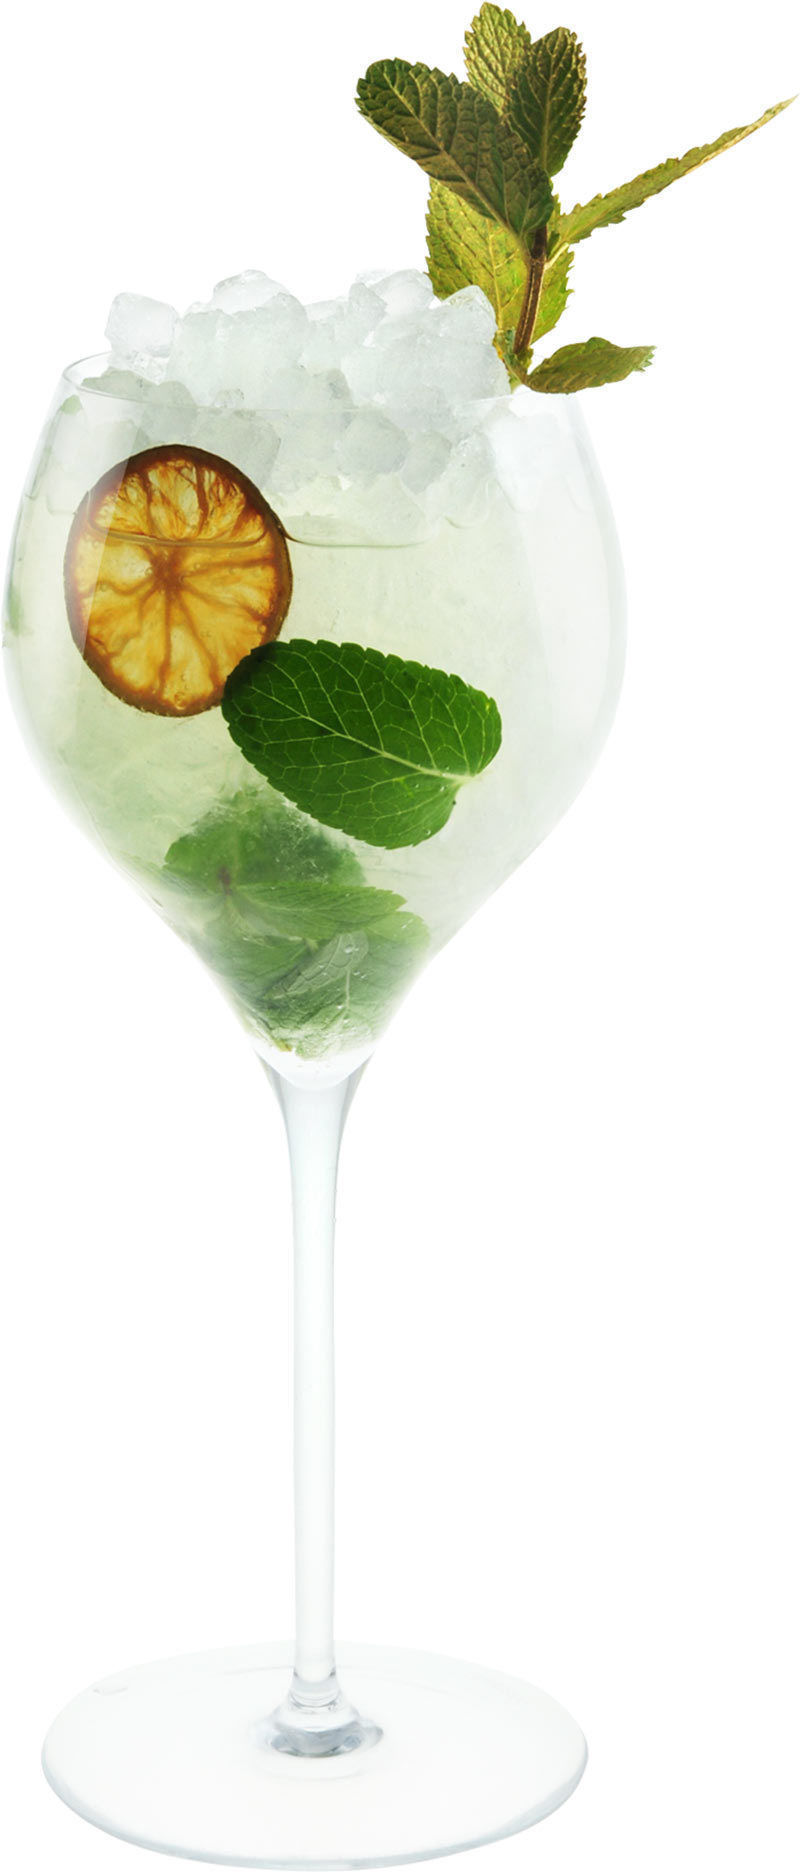 Come Fare il Mojito Royal